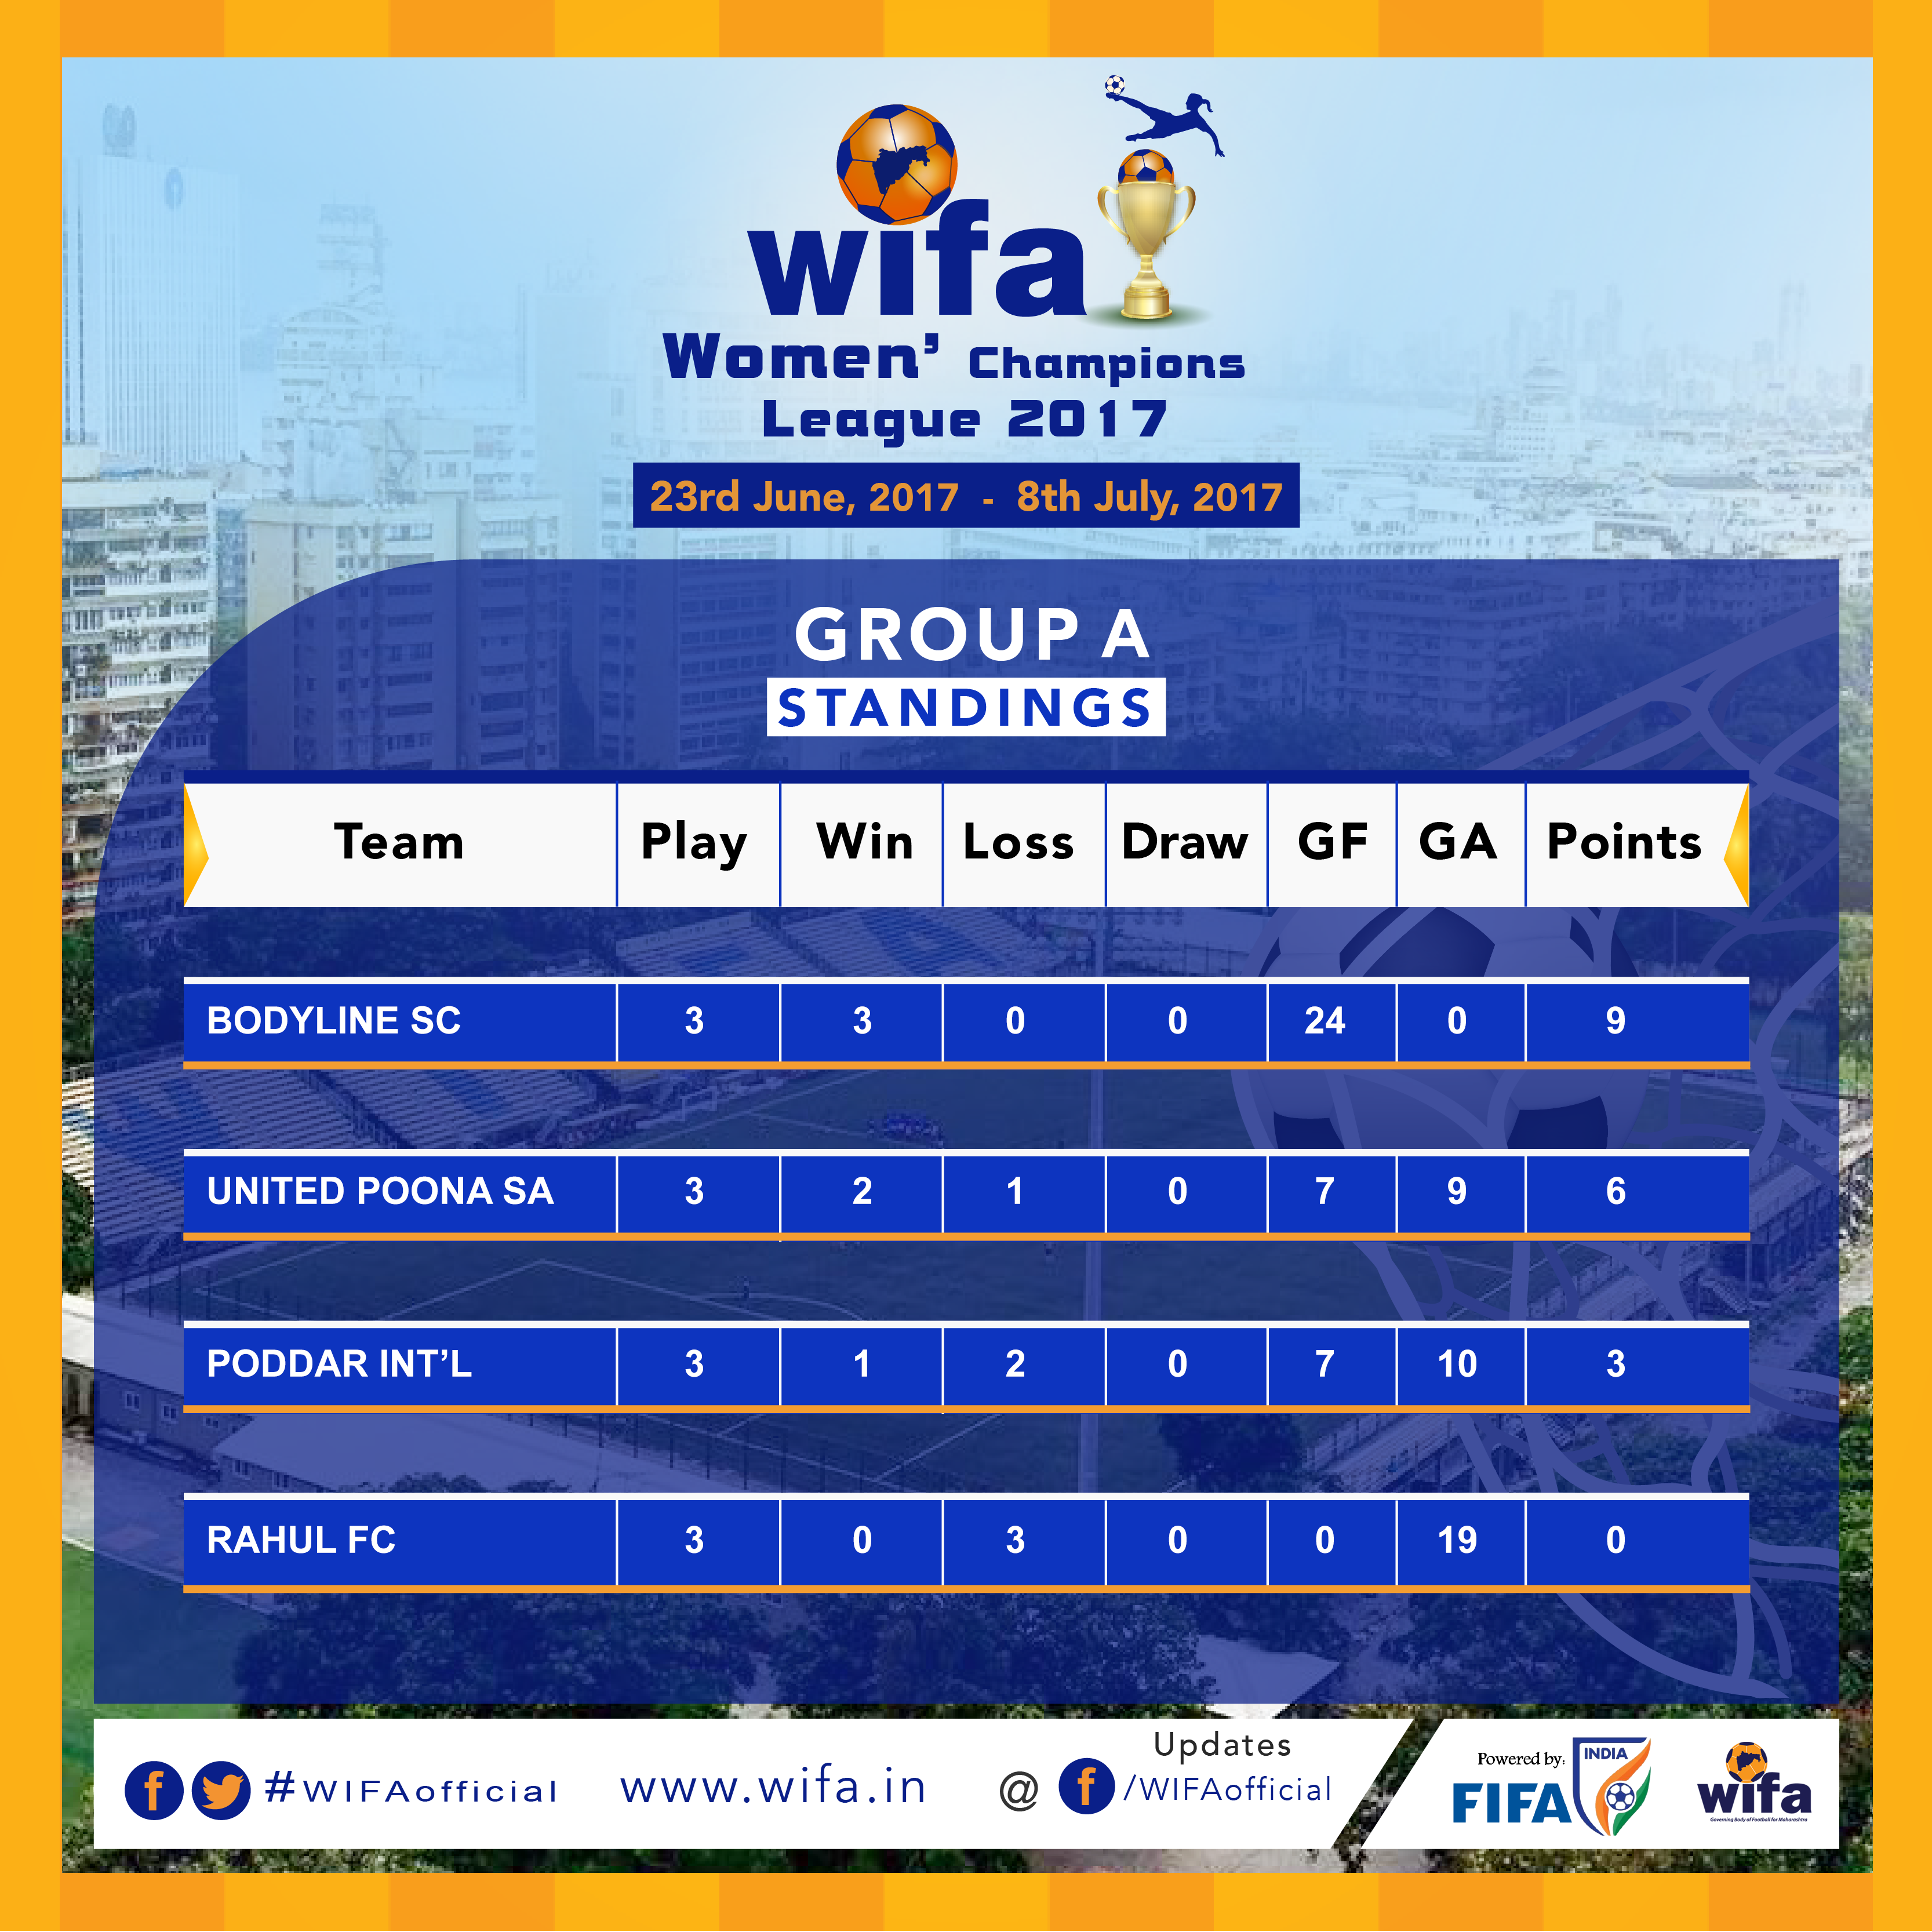 WIFA Women's Championship Group A standings